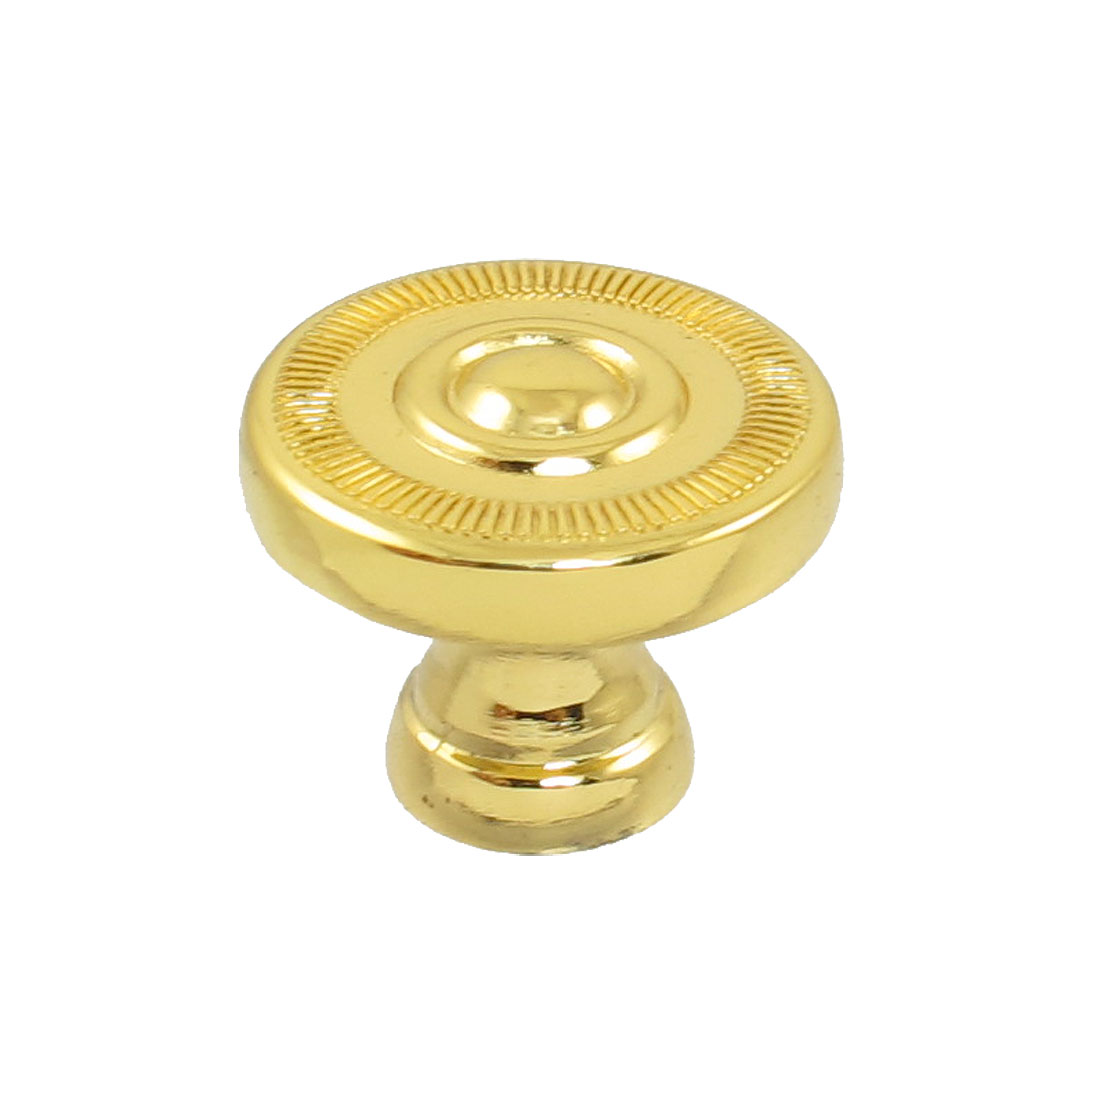 "Screw Fix Cabinet Drawer Gold Tone 2.5cm 1"" Round Pull Handle Knob"